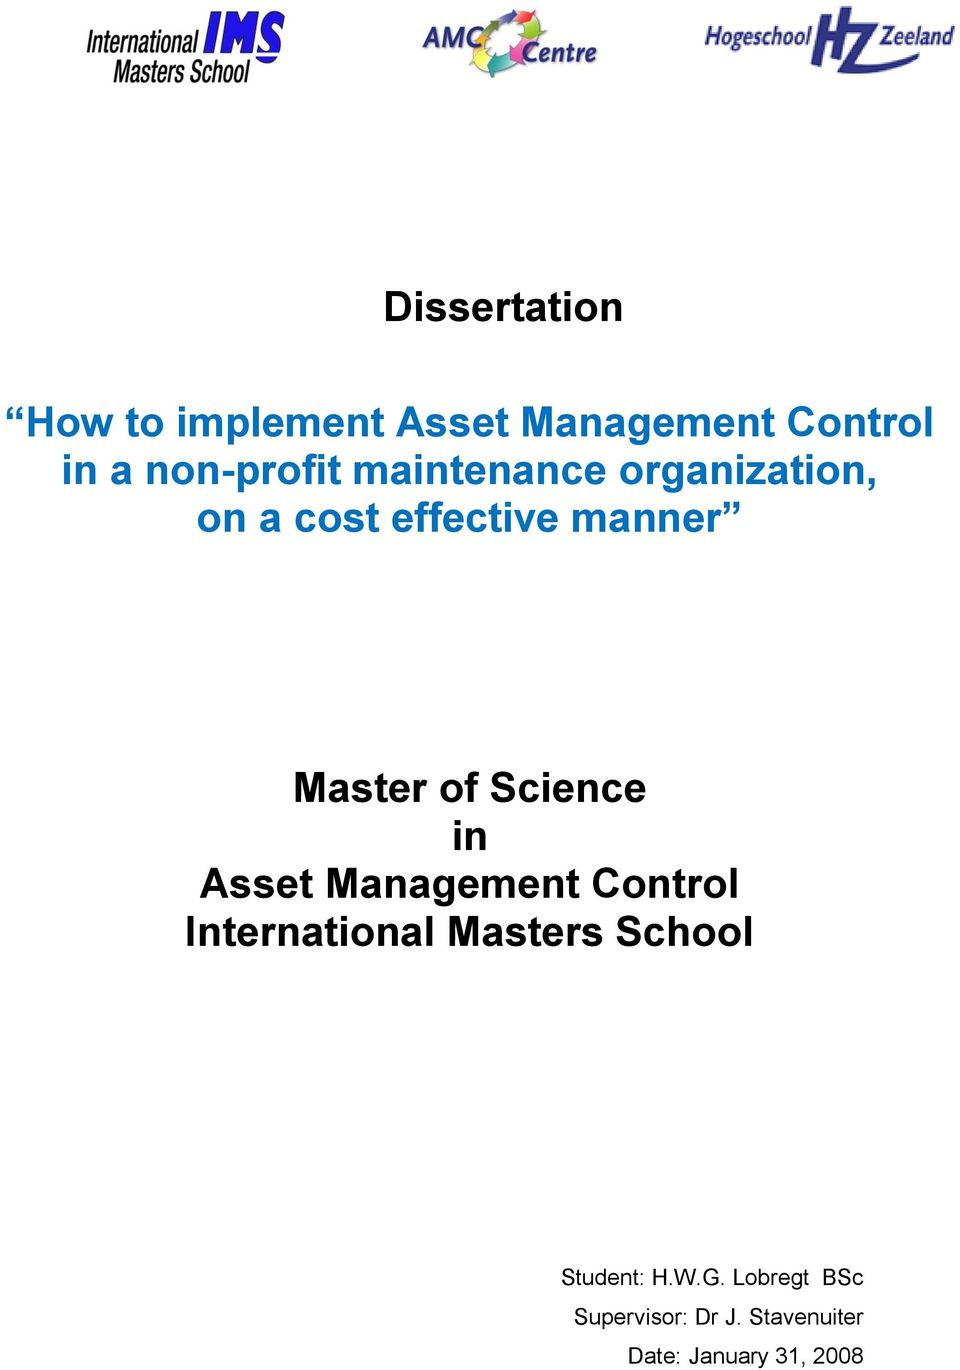 Phd thesis on non-performing assets